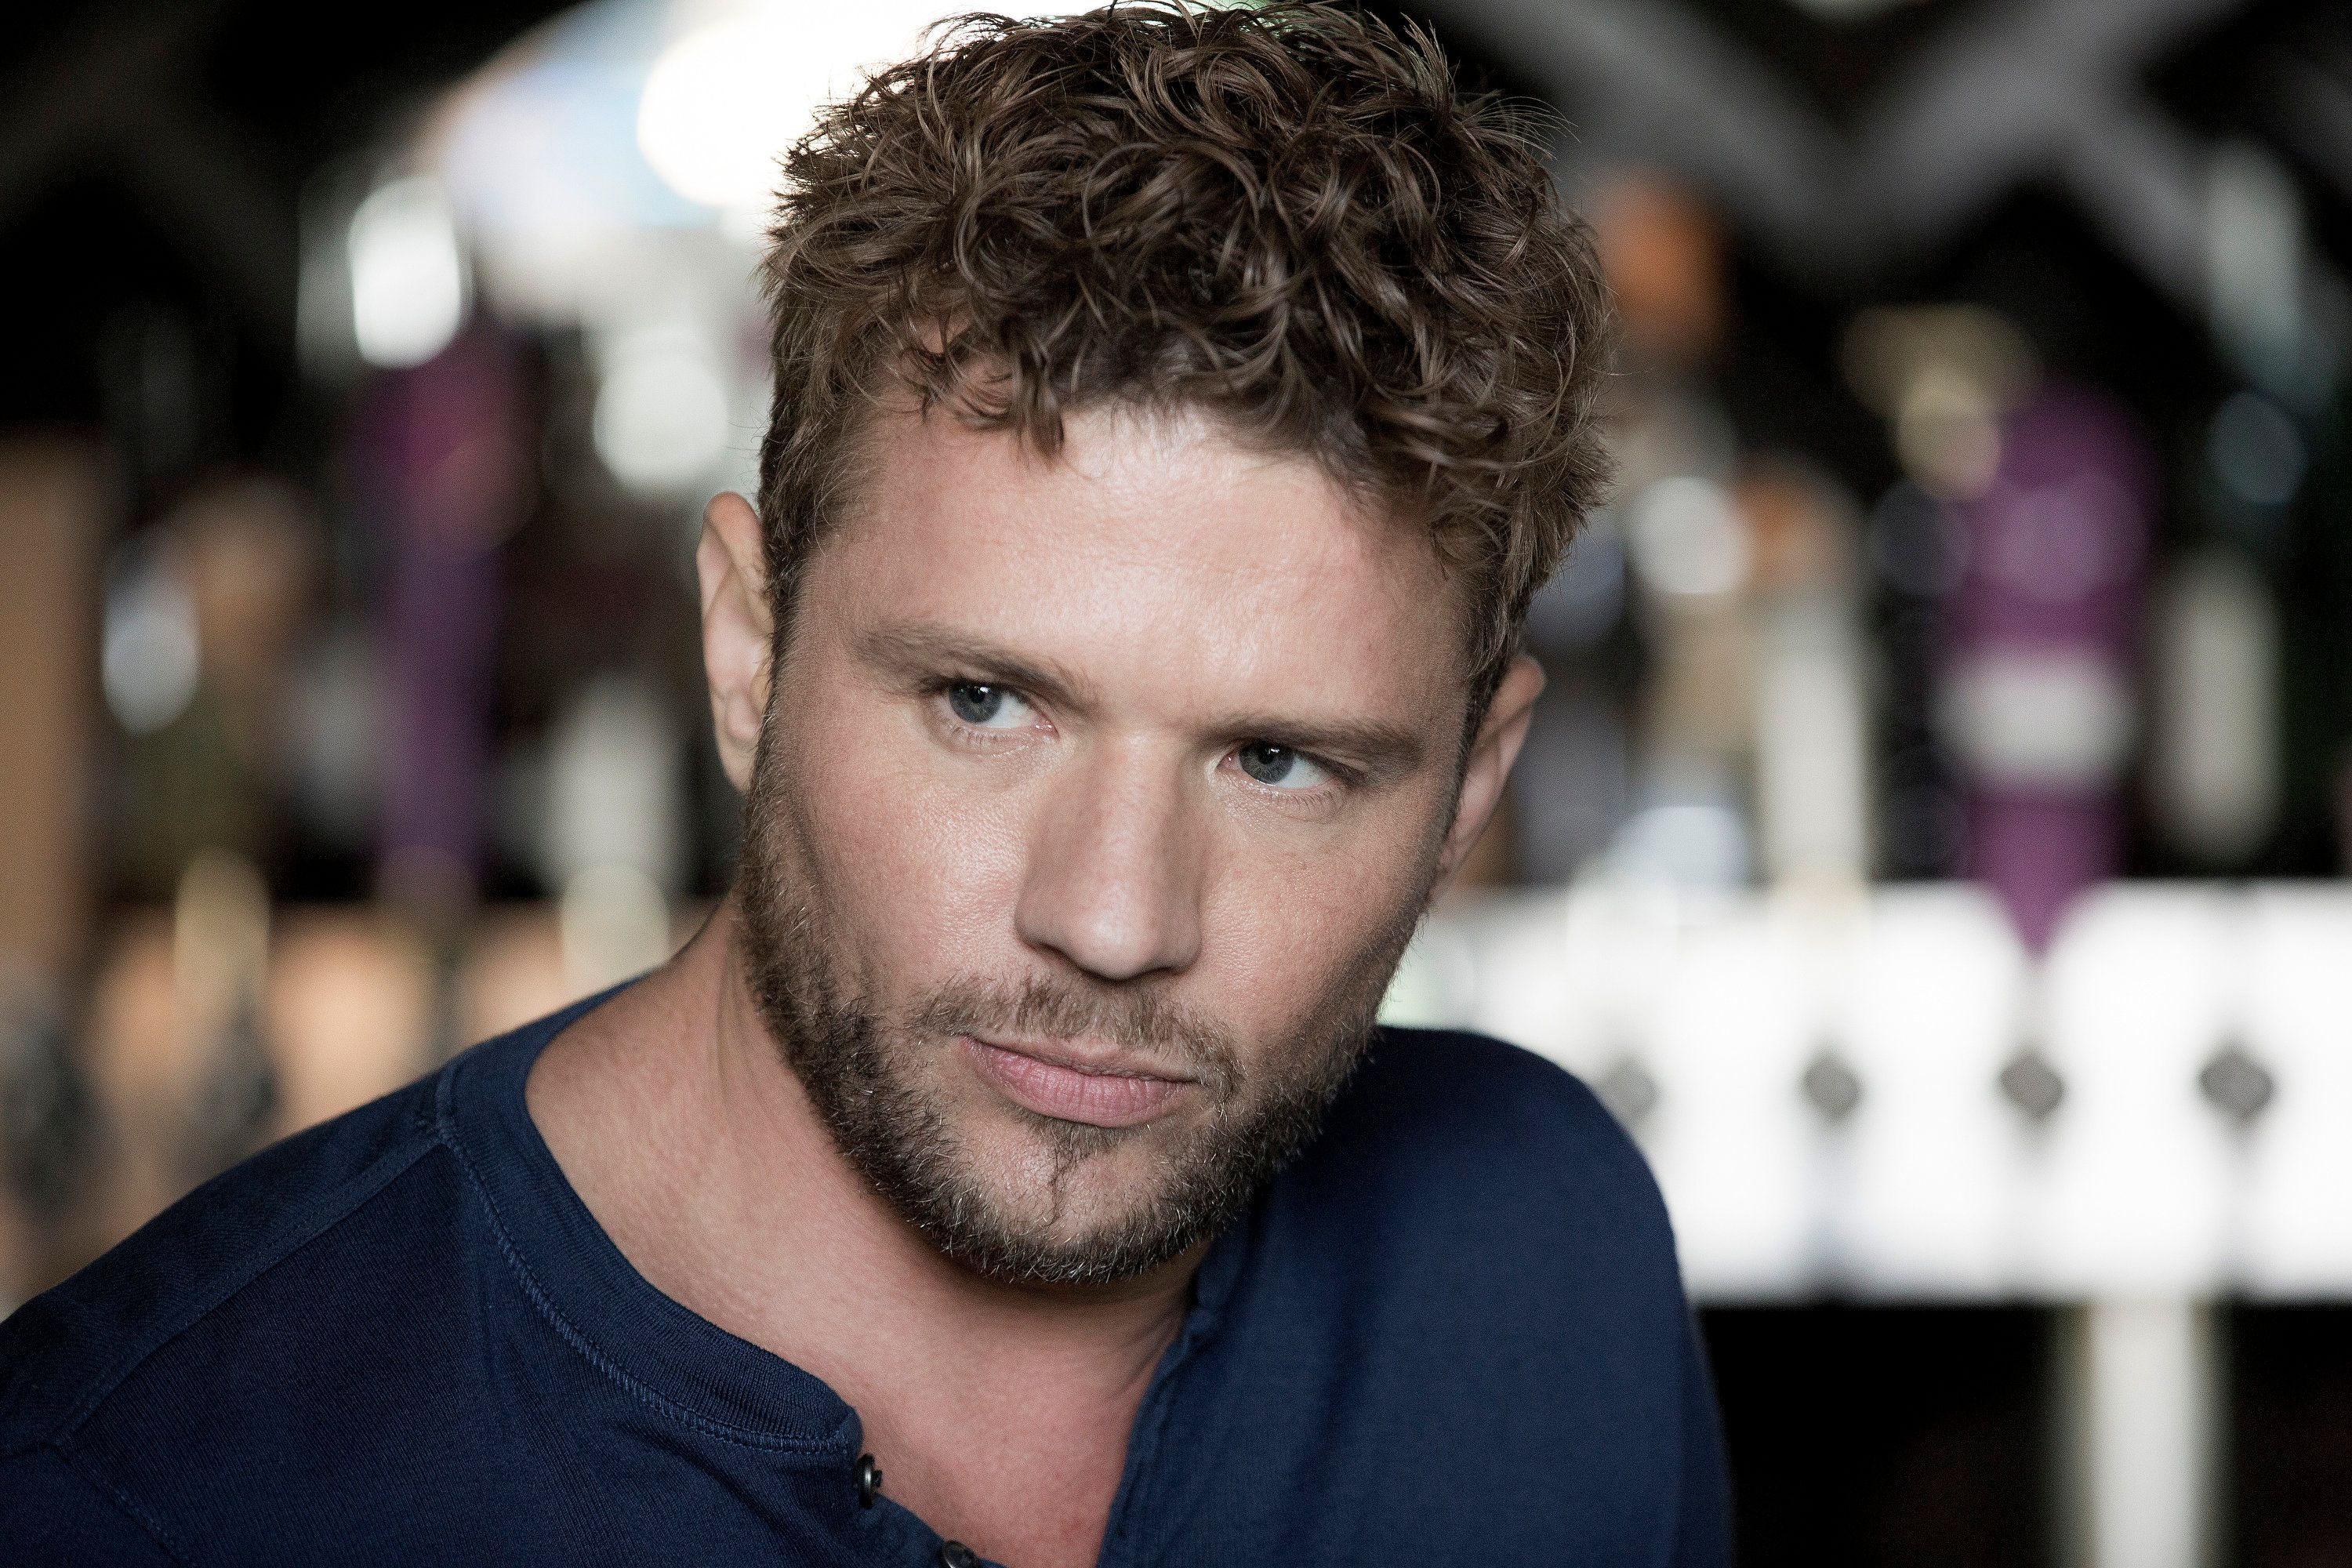 SHOOTER -- 'The Hunting Party' Episode 201 -- Pictured: Ryan Phillippe as Bob Lee Swagger -- (Photo by: Isabella Voskmikova/USA Network/NBCU Photo Bank via Getty Images)